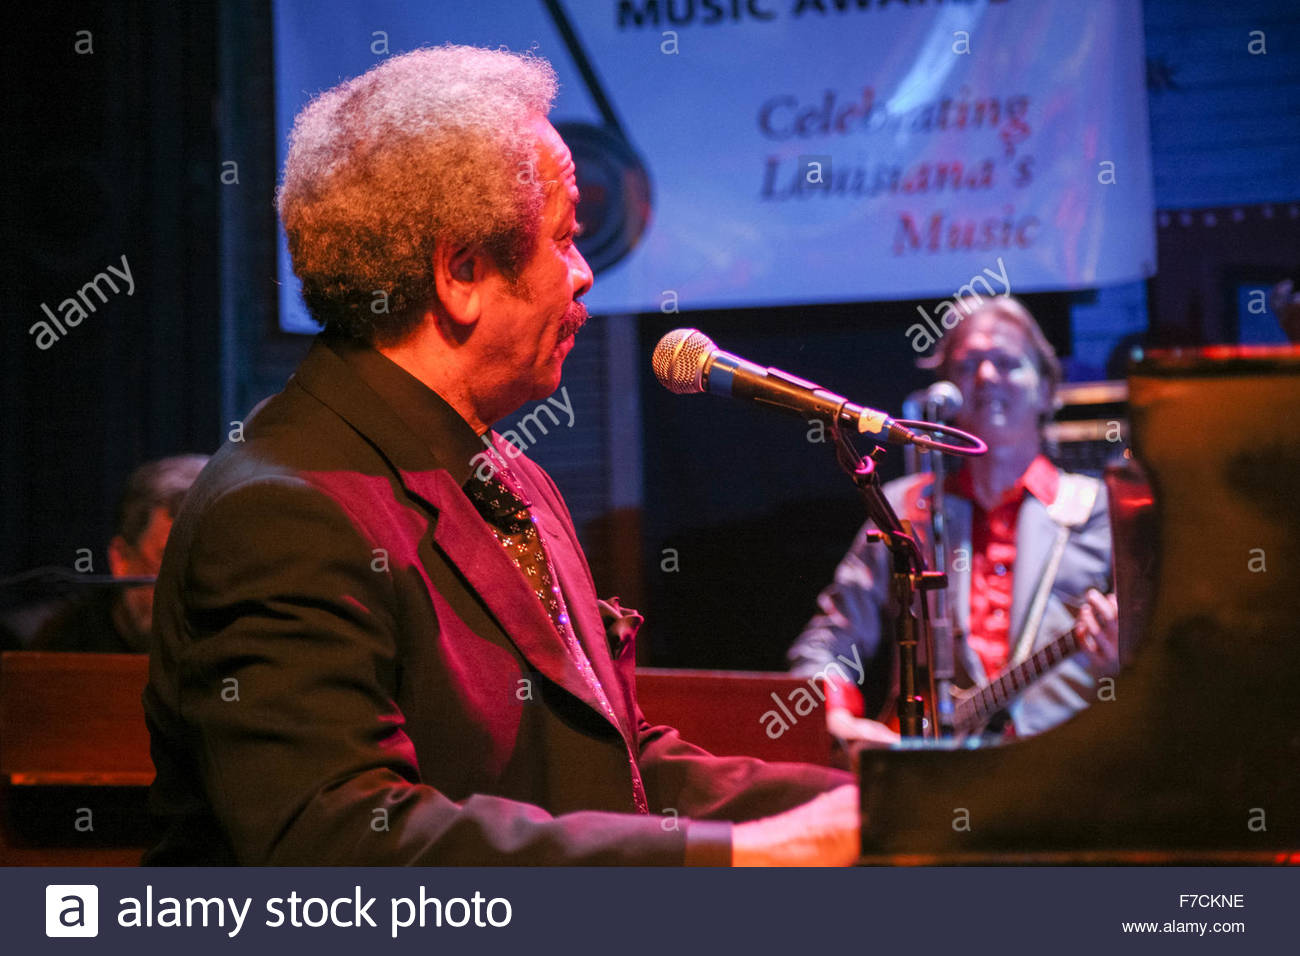 Musician Allen Toussaint, performing at the House of Blues on January 27, 2007 in New Orleans, Louisiana, USA - Stock Image